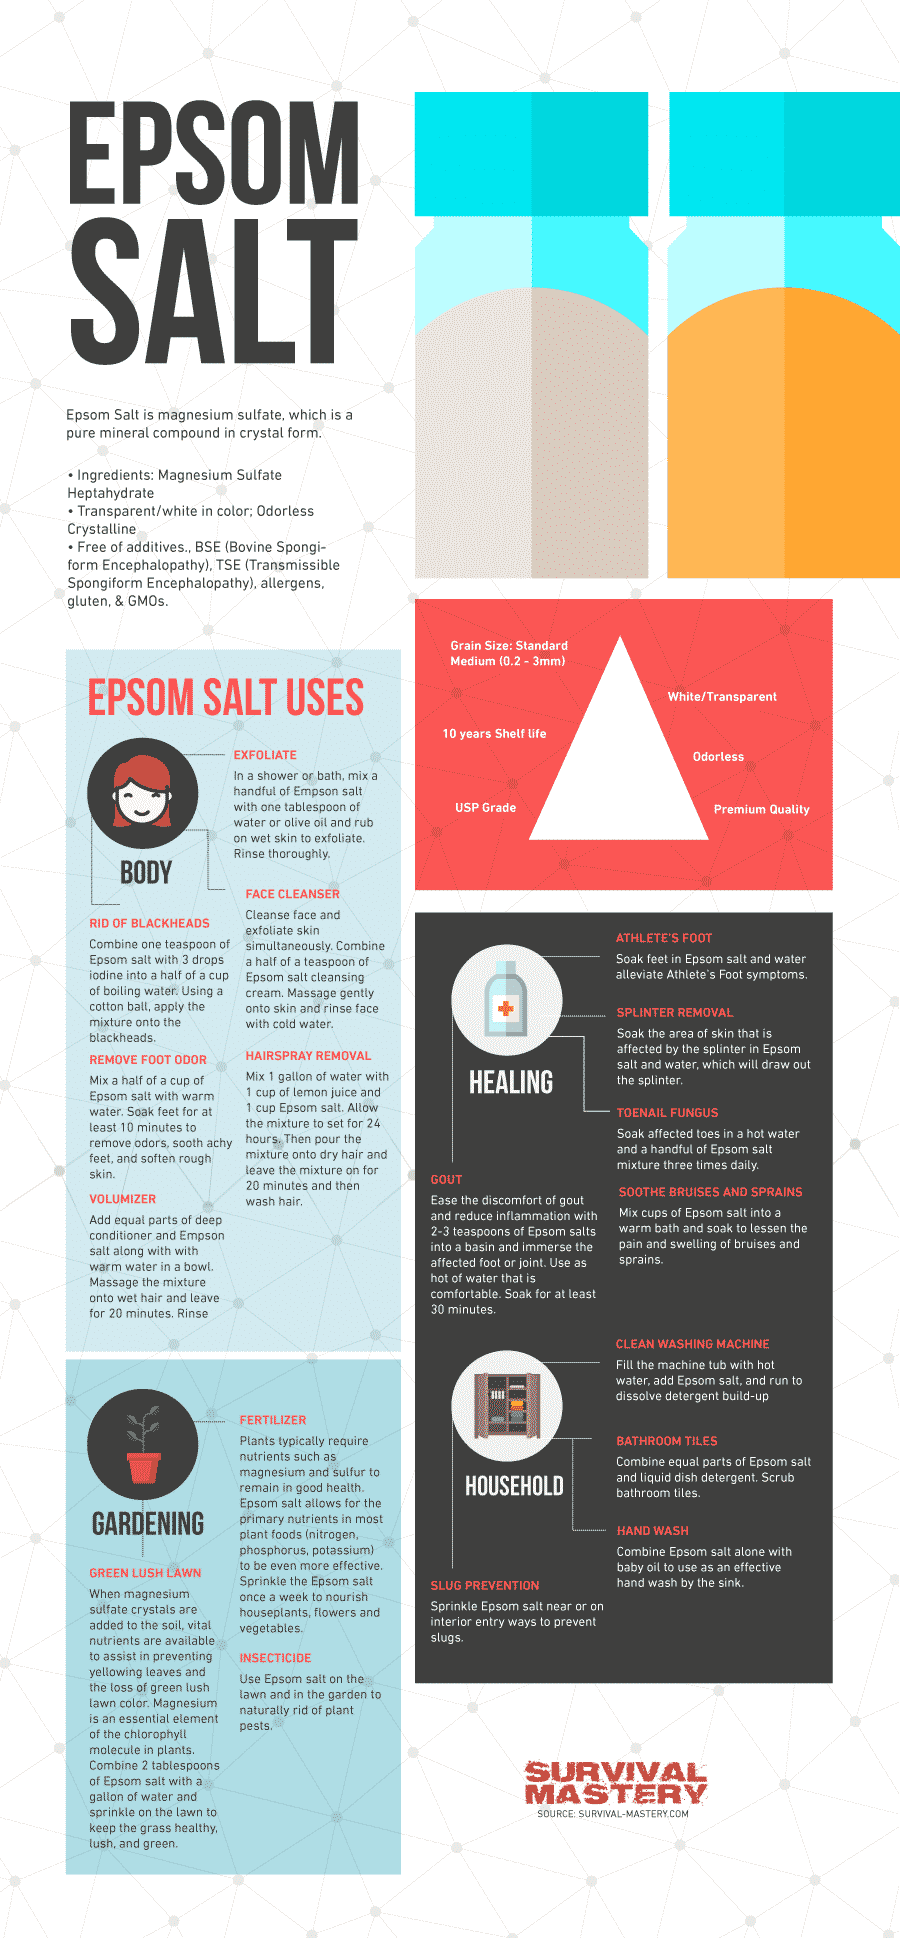 Uses for Epsom Salt infographic